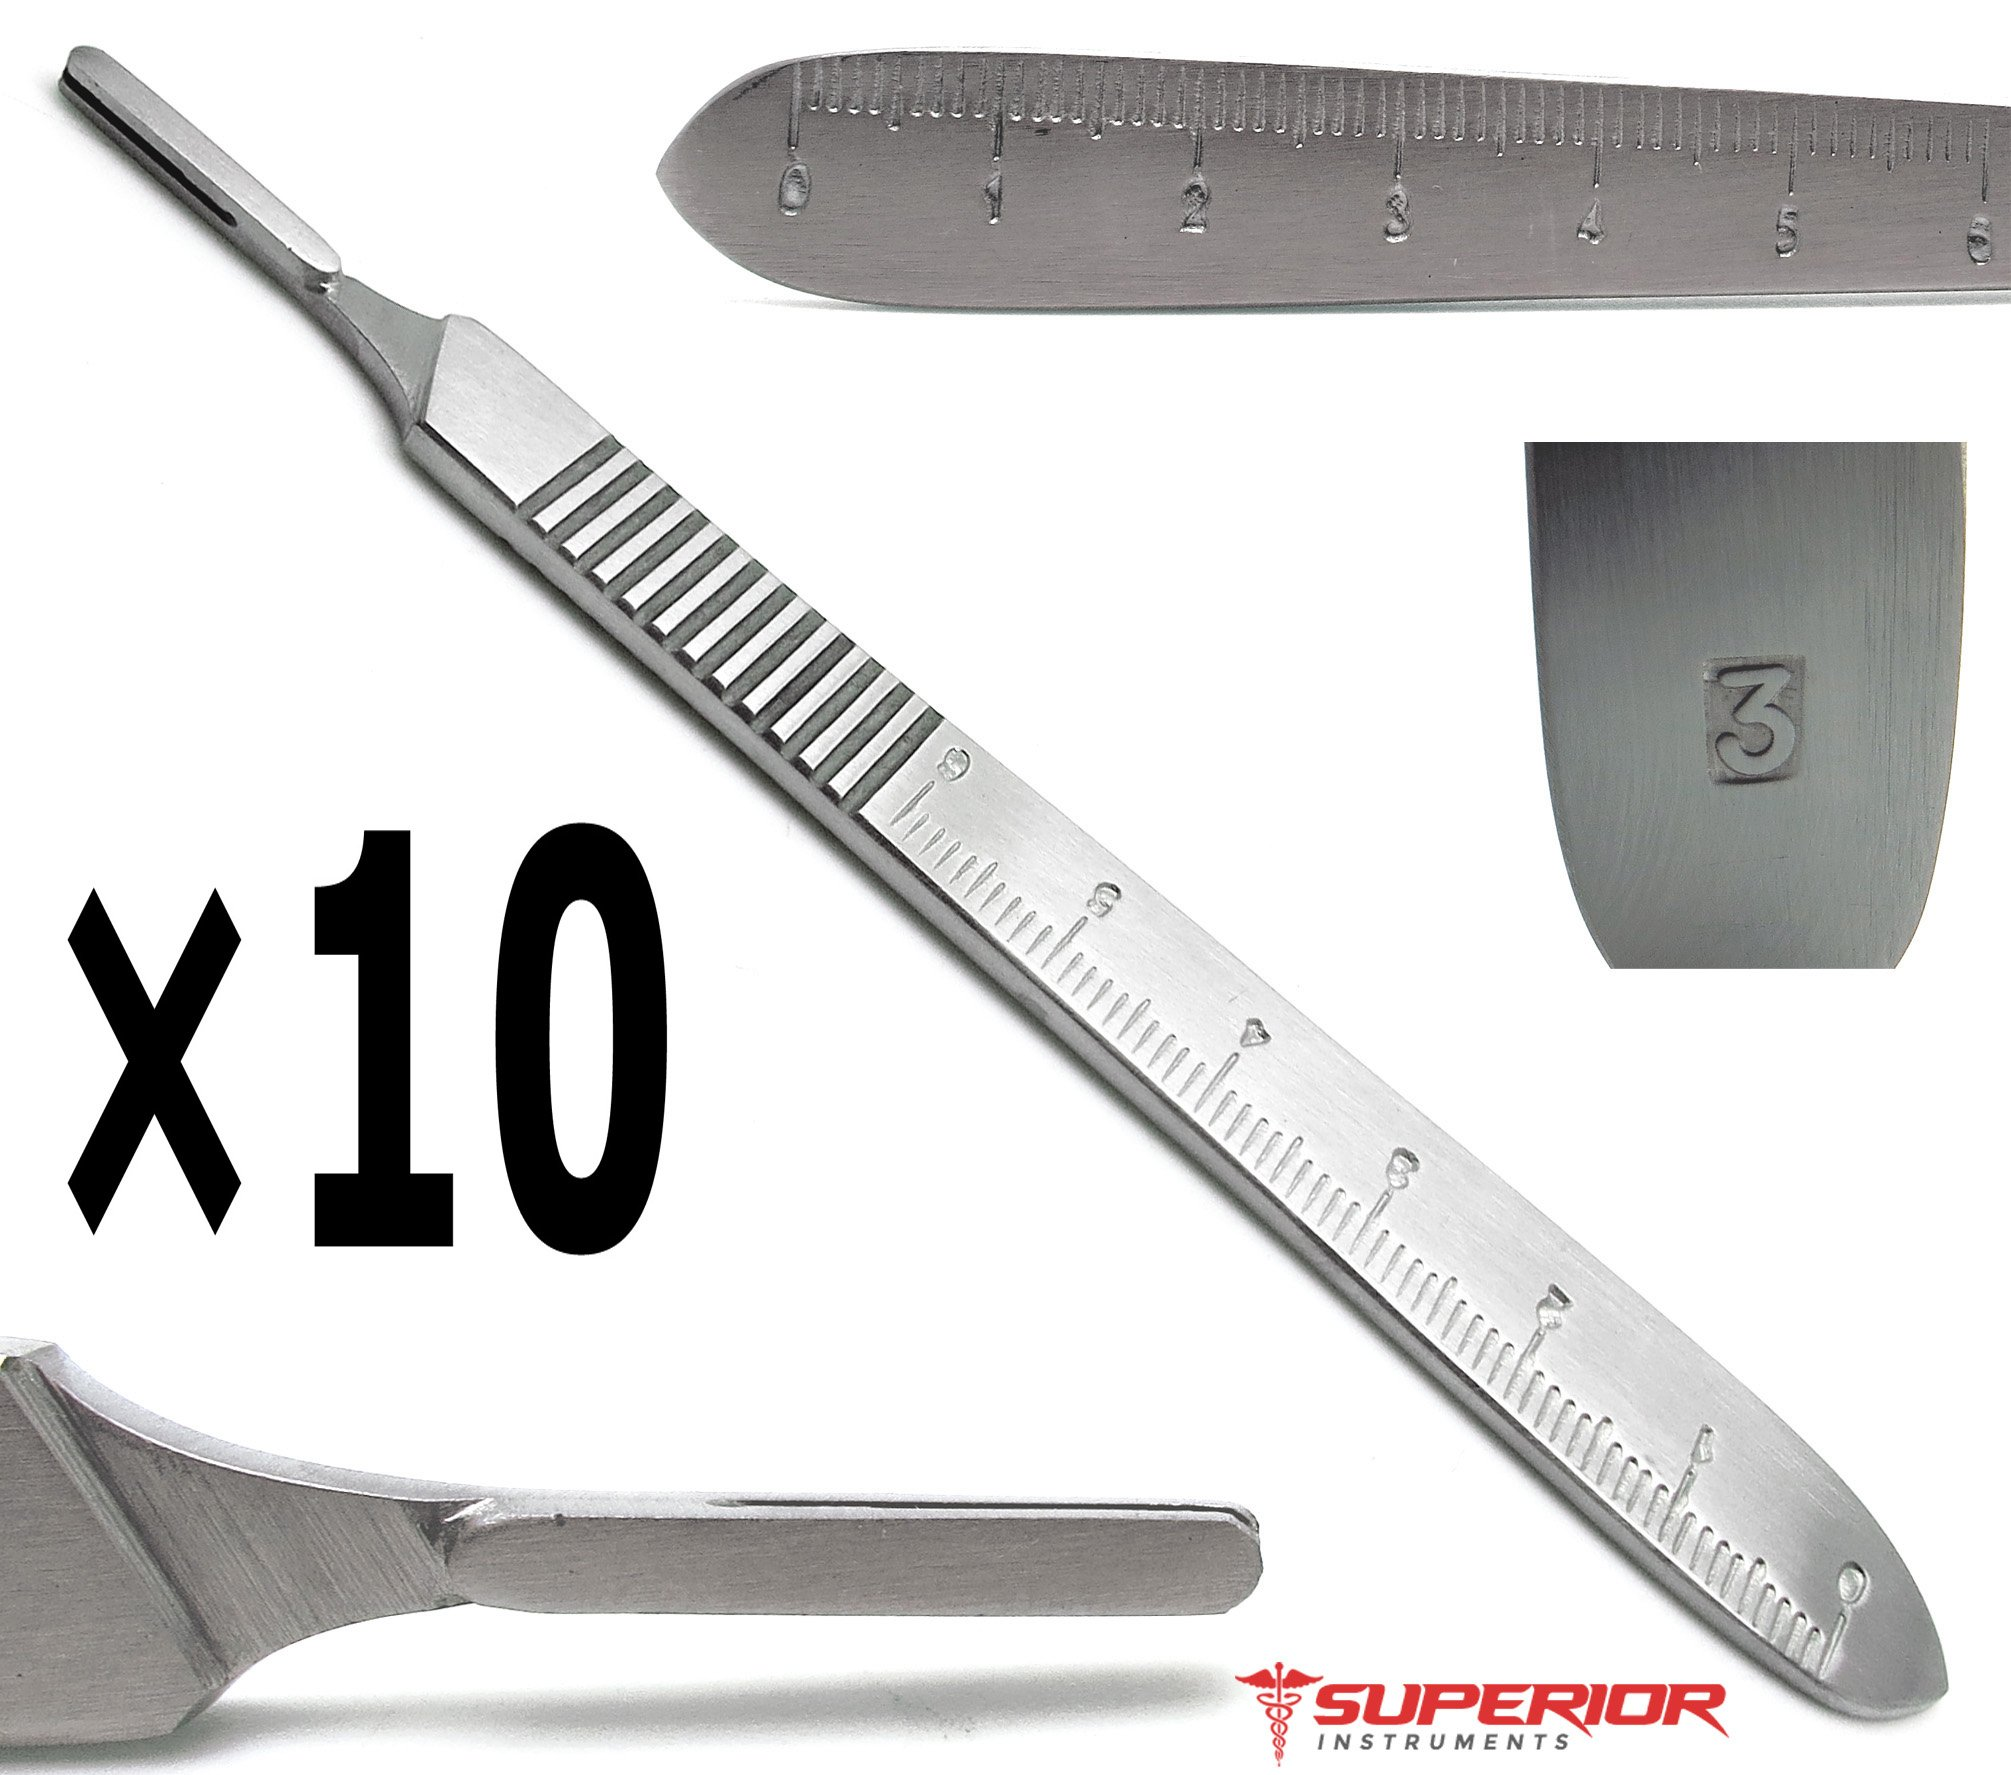 10 Pcs Dental Standard Scalpel Handle No. 3 Stainless Steel Superior Quality Instruments